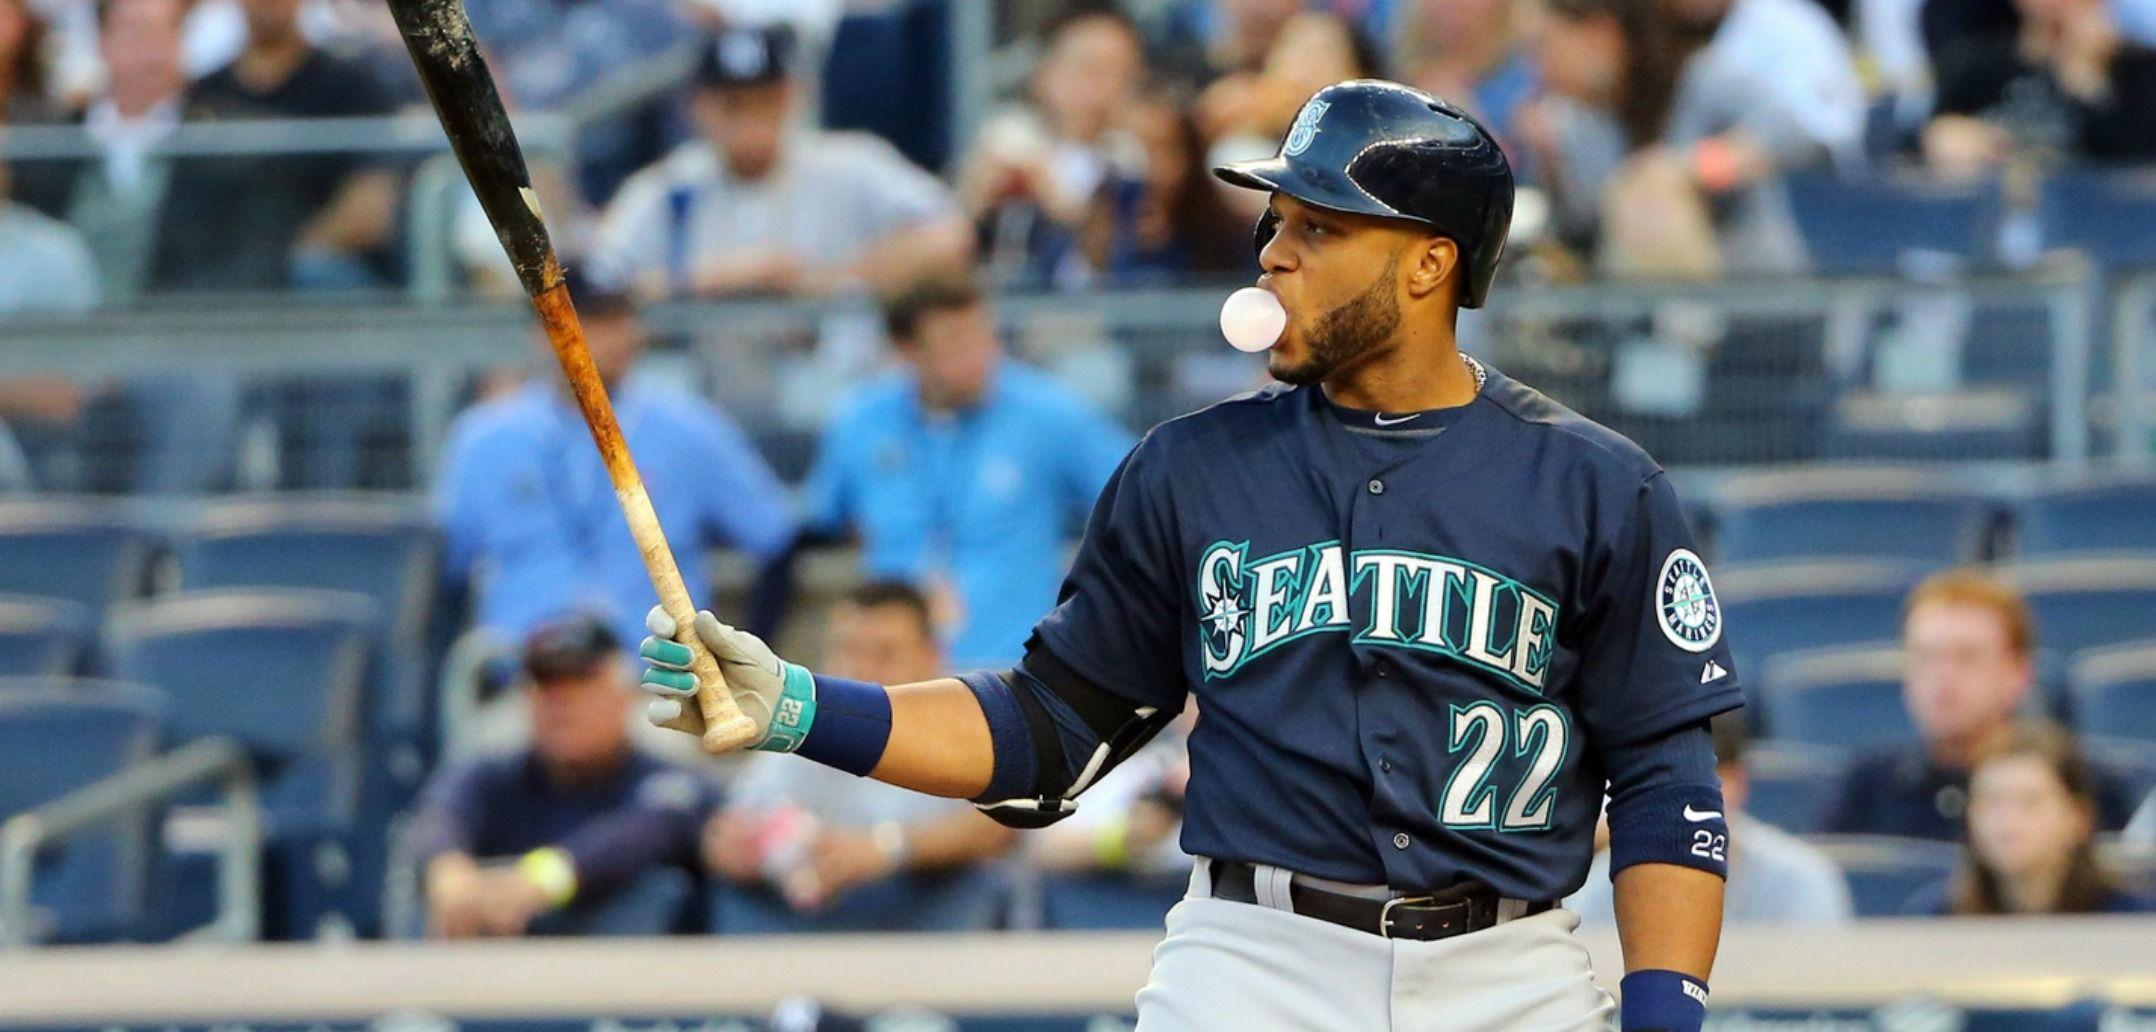 MLB Player Profile: Robinson Cano, Seattle Mariners